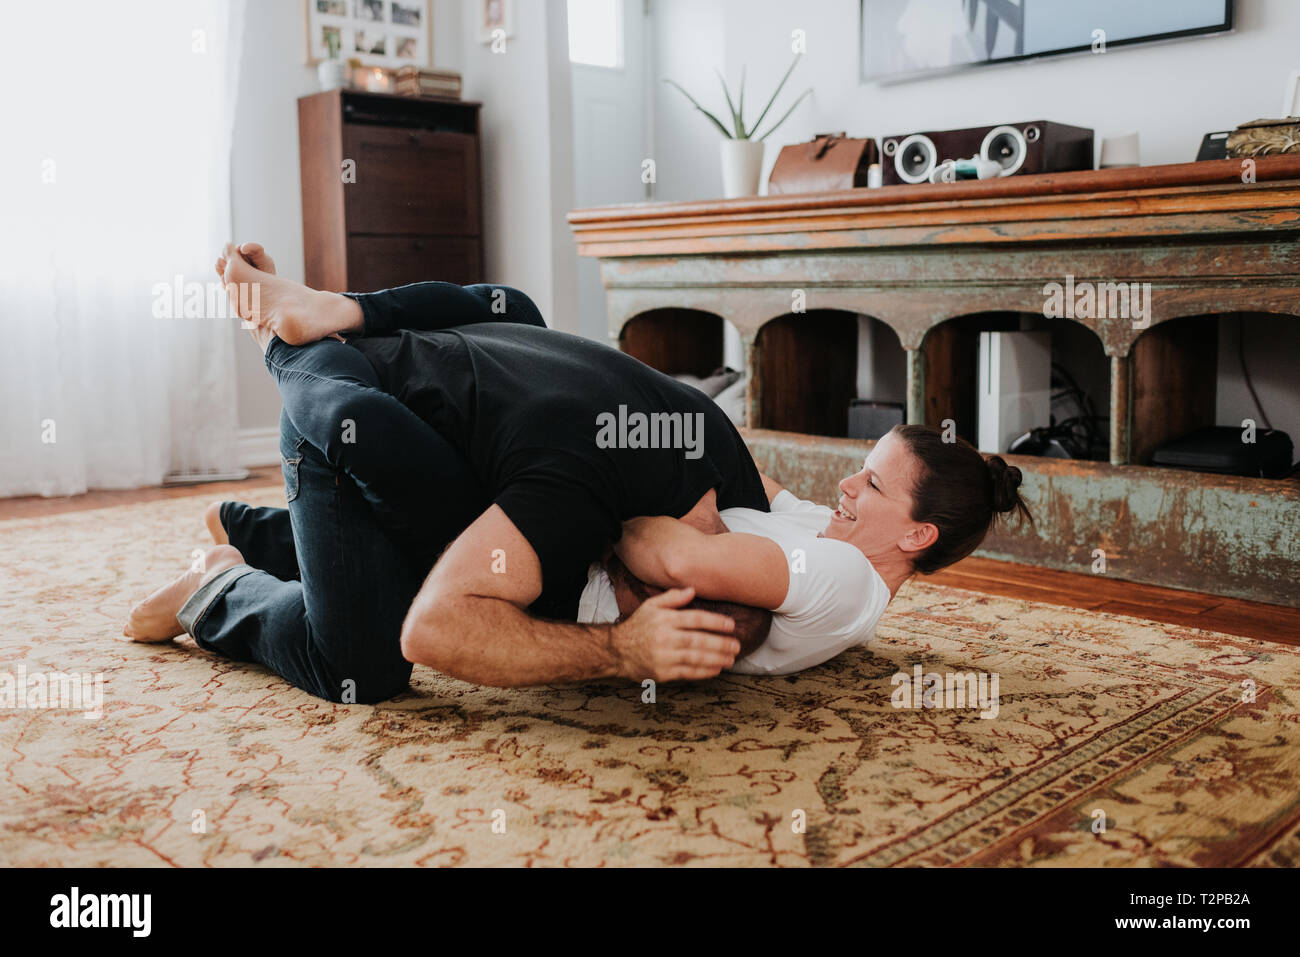 Couple wrestling on carpet at home - Stock Image